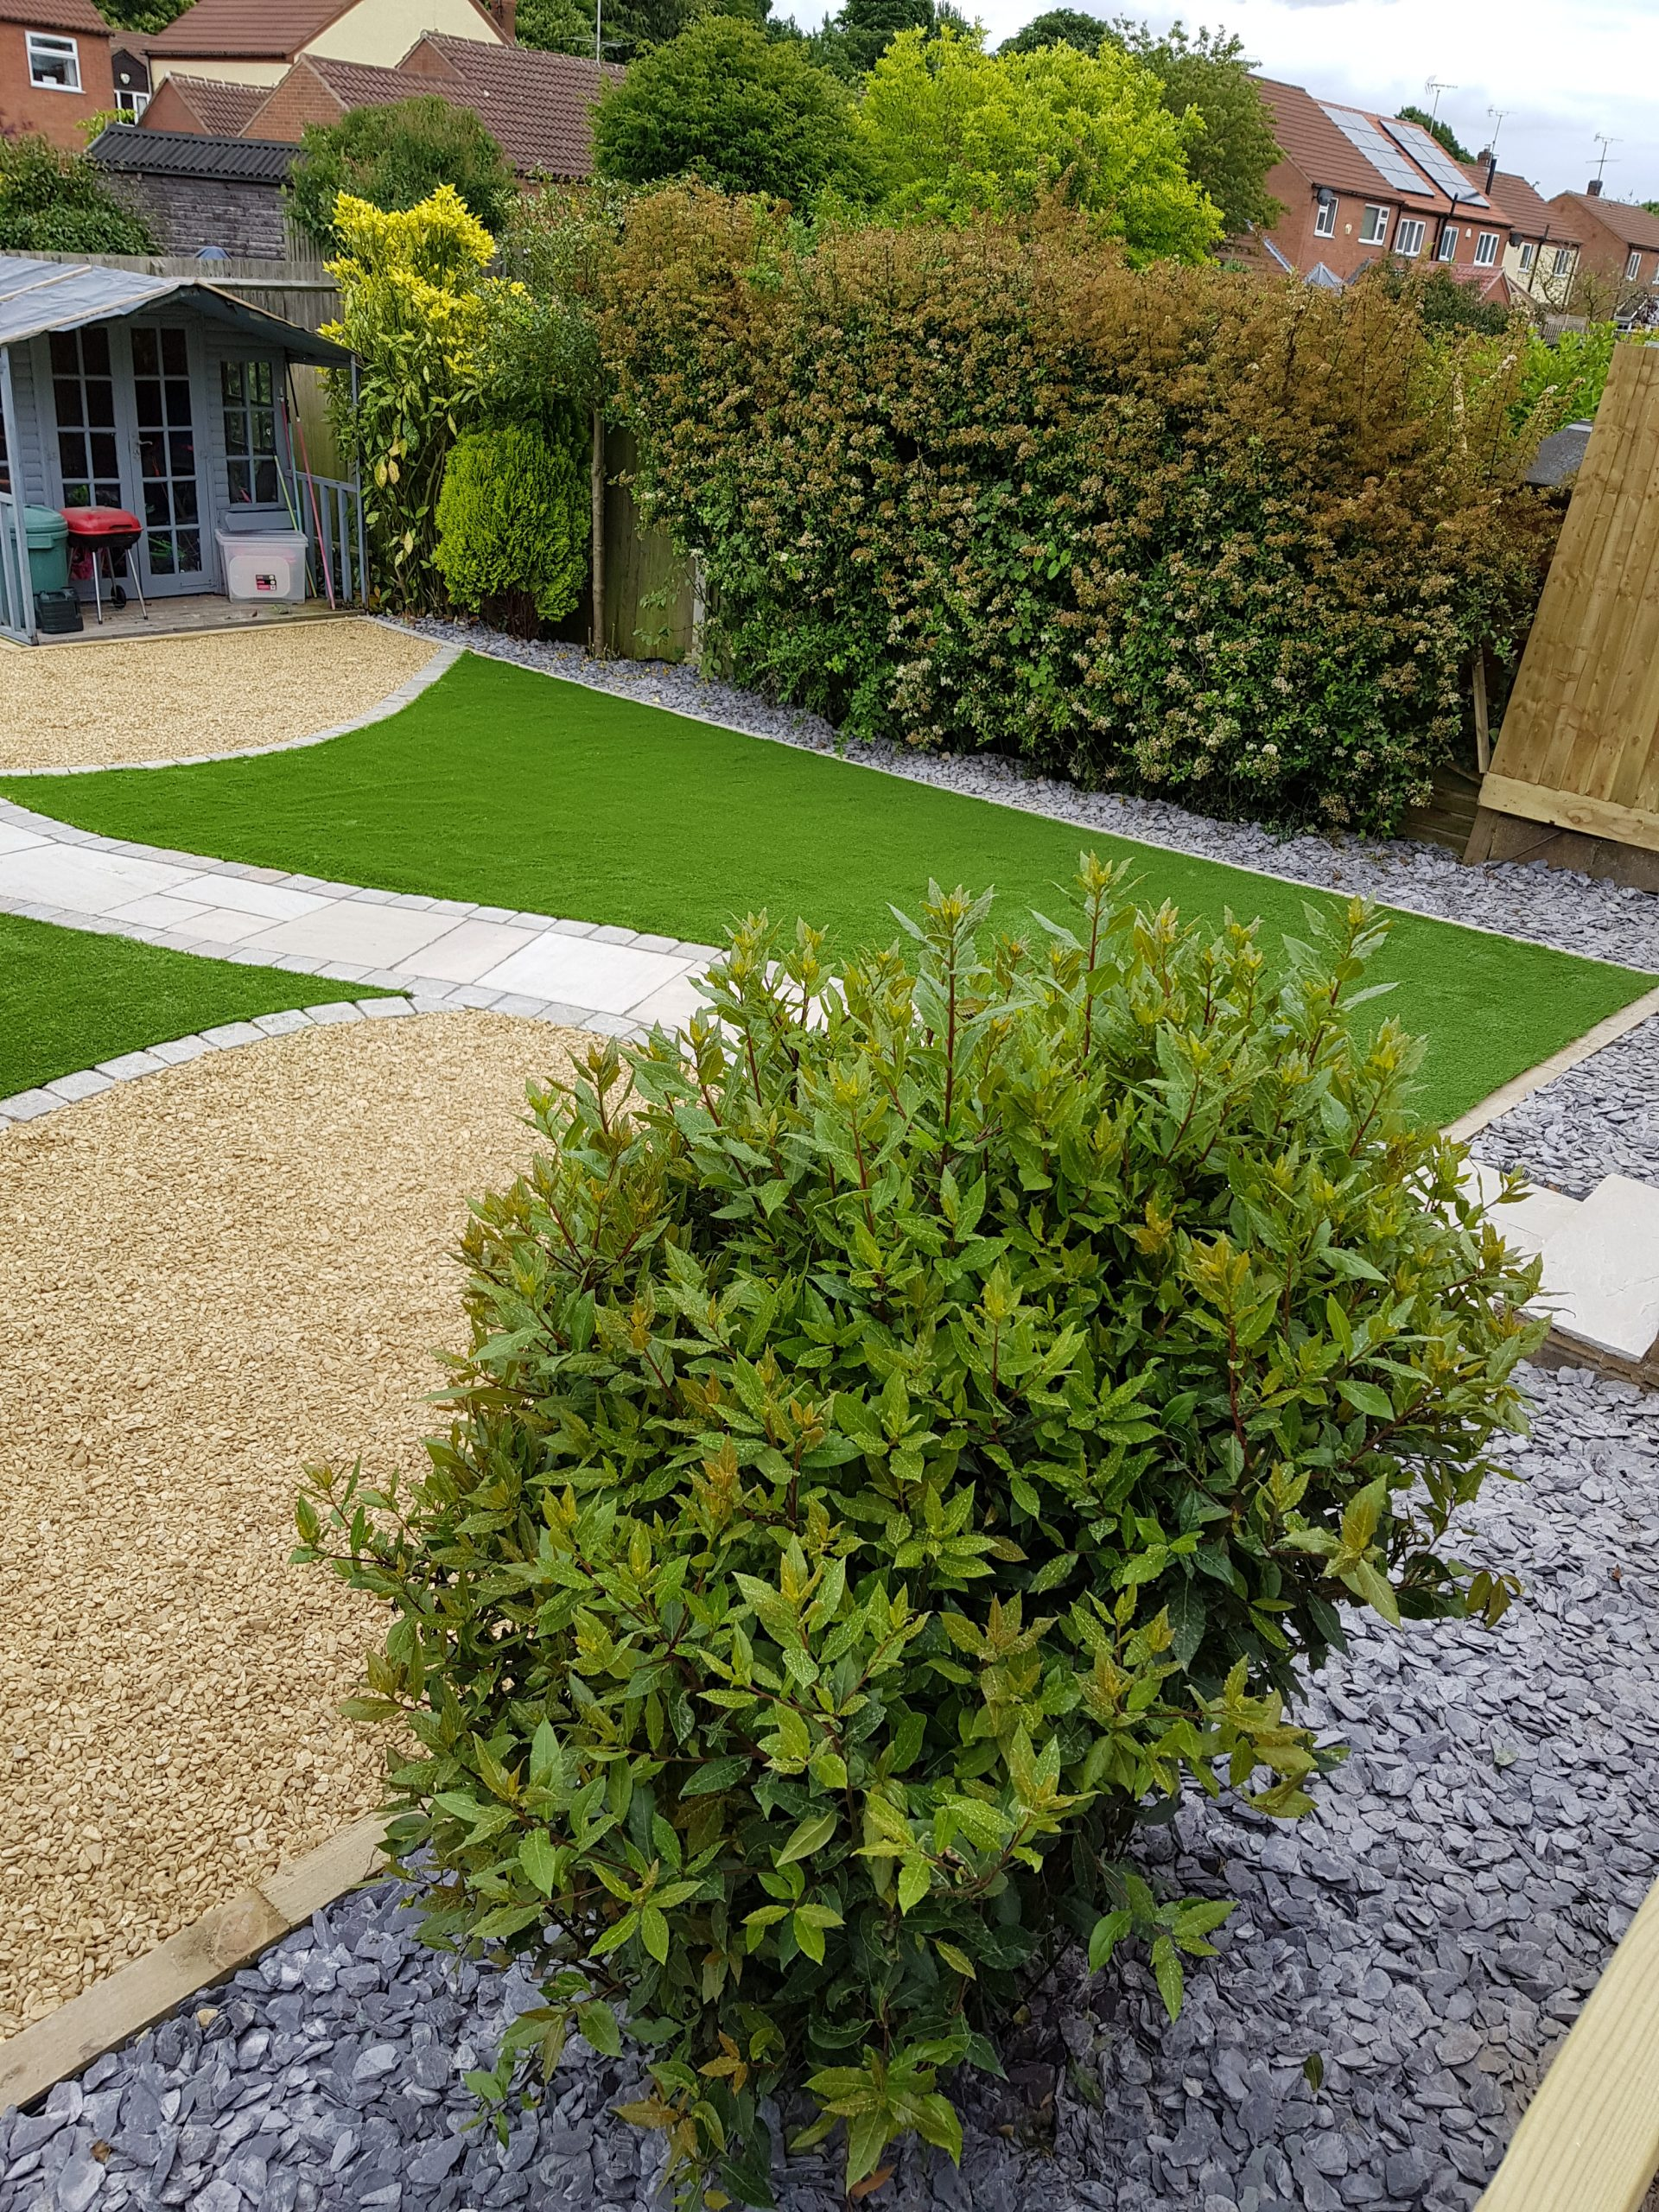 Garden make over with artificial grass, slate areas and pathway